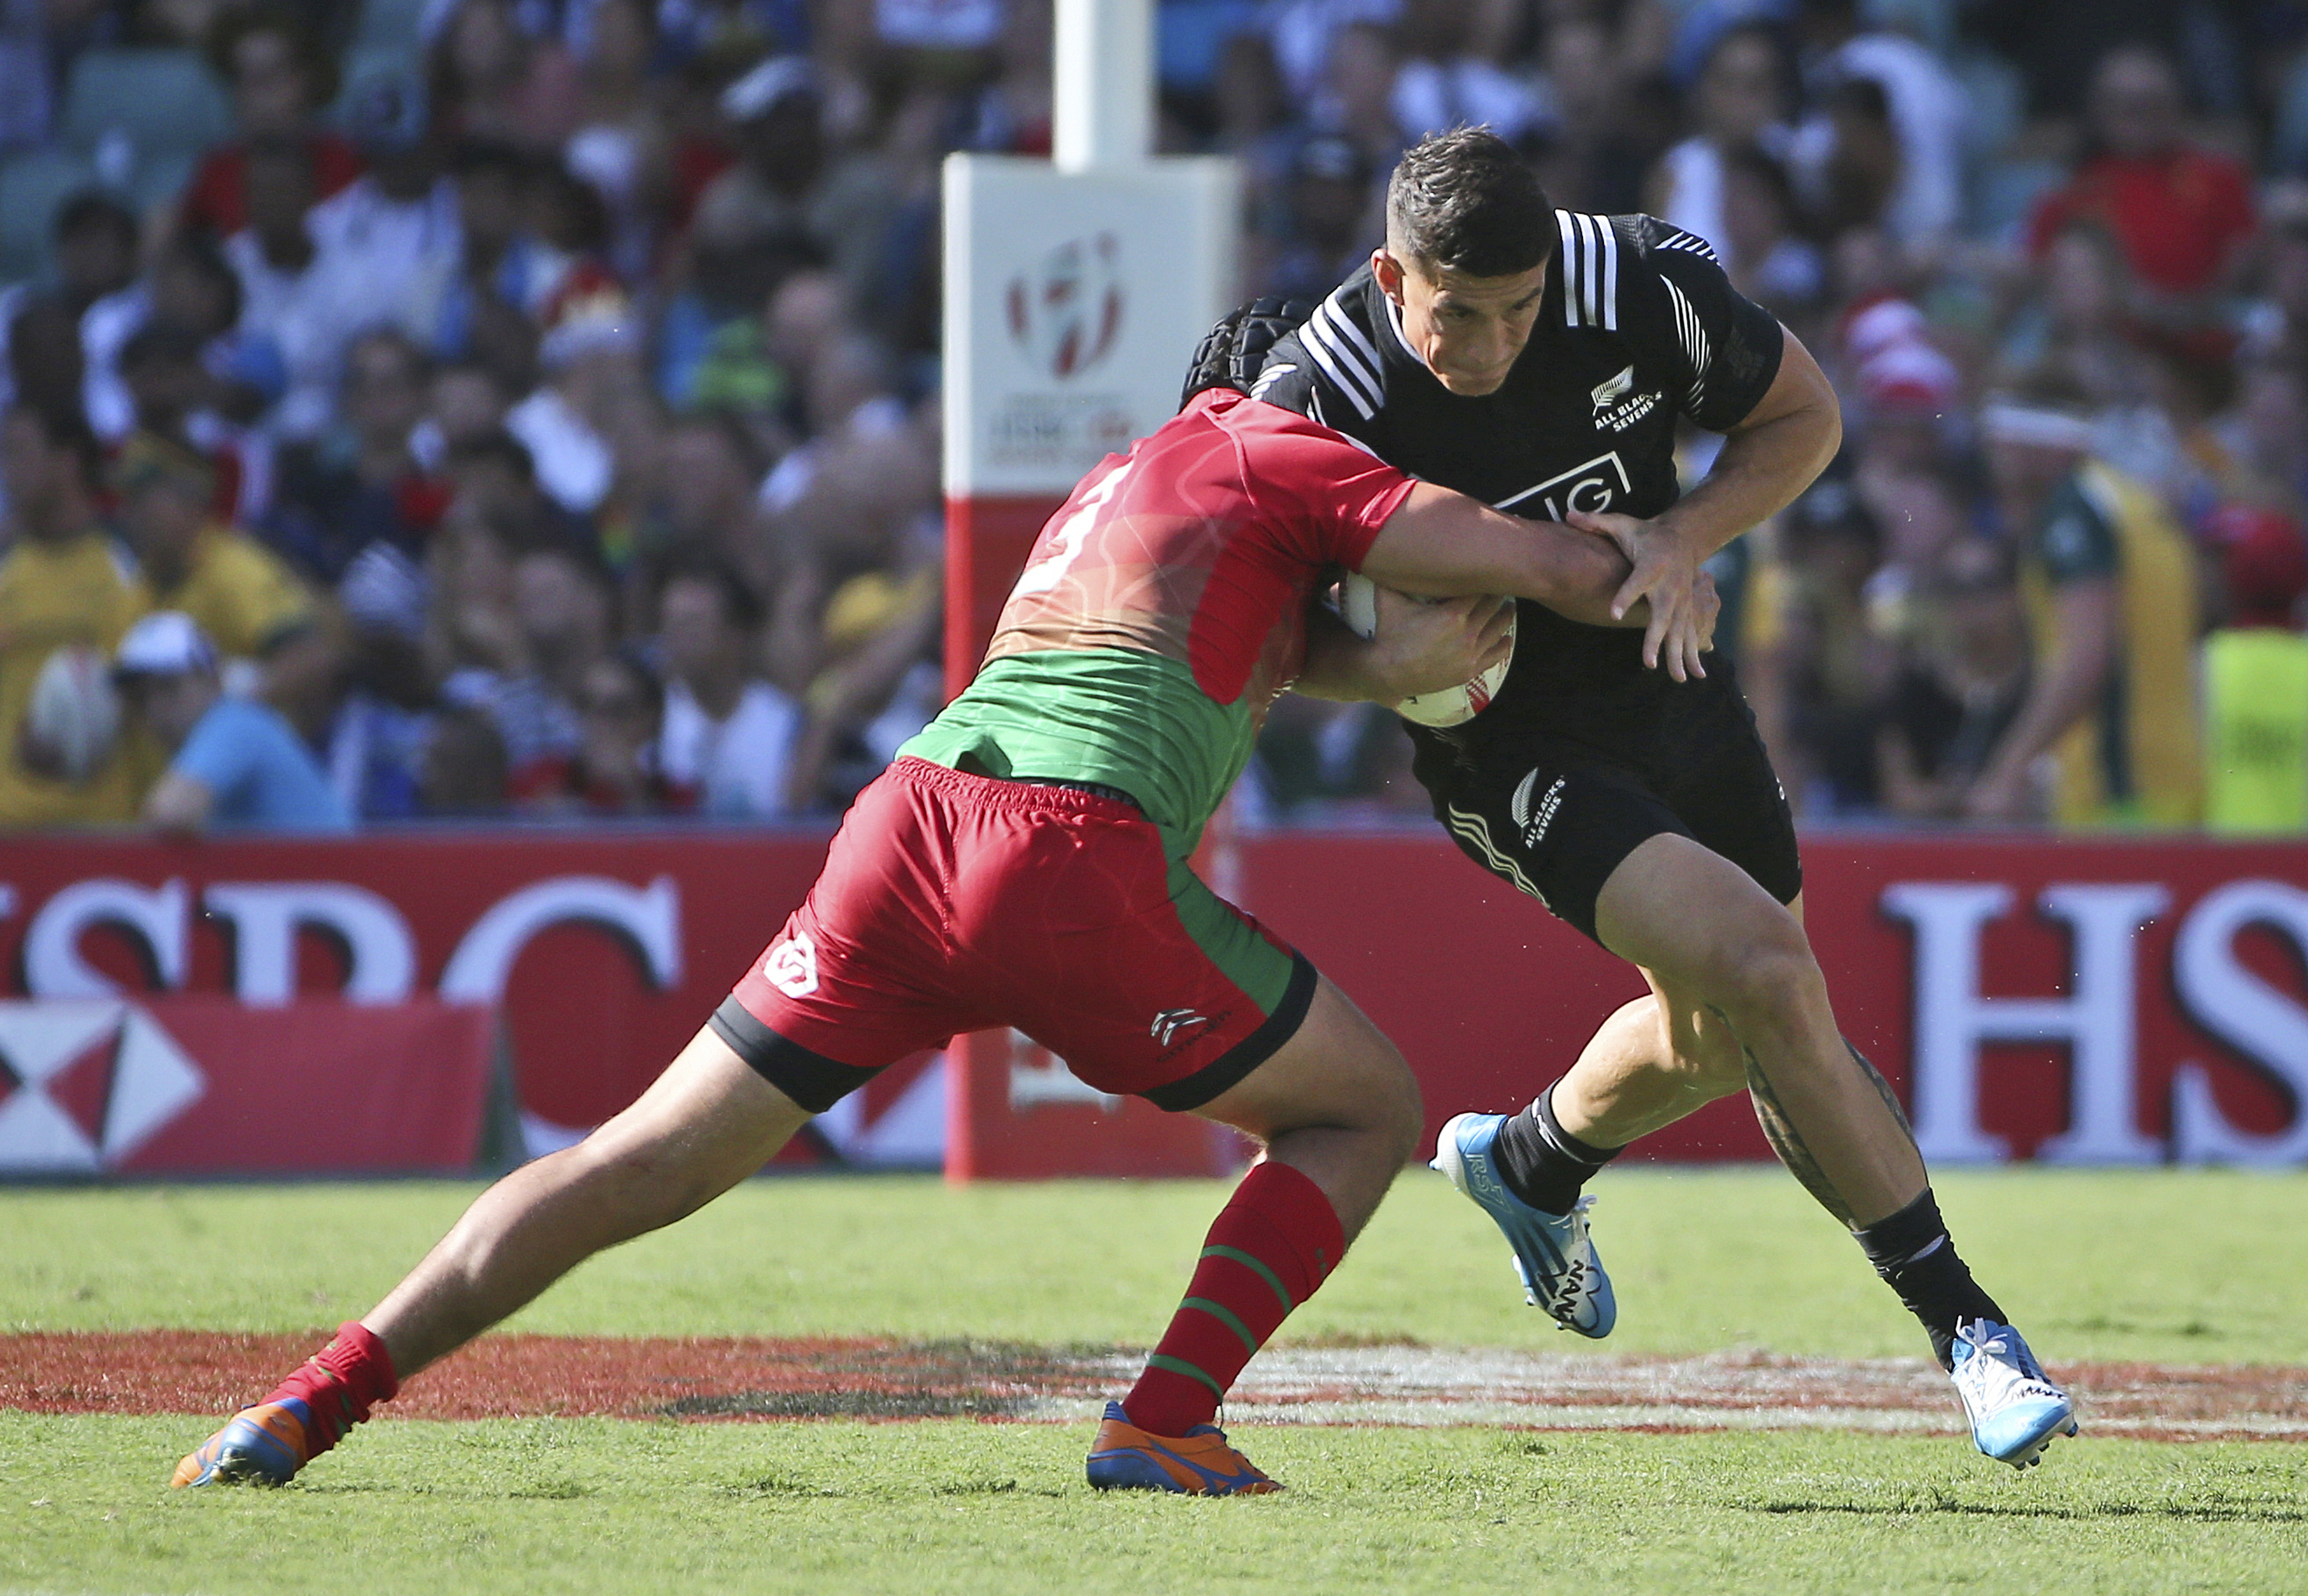 FILE - In this Feb. 6, 2016 file photo Miguel Lucas of Portugal, left, tackles Sonny Bill Williams of New Zealand during the World Rugby Sevens Series in Sydney, Australia. Rugby is returning to the Olympics for the first time in 92 years with a abbreviat